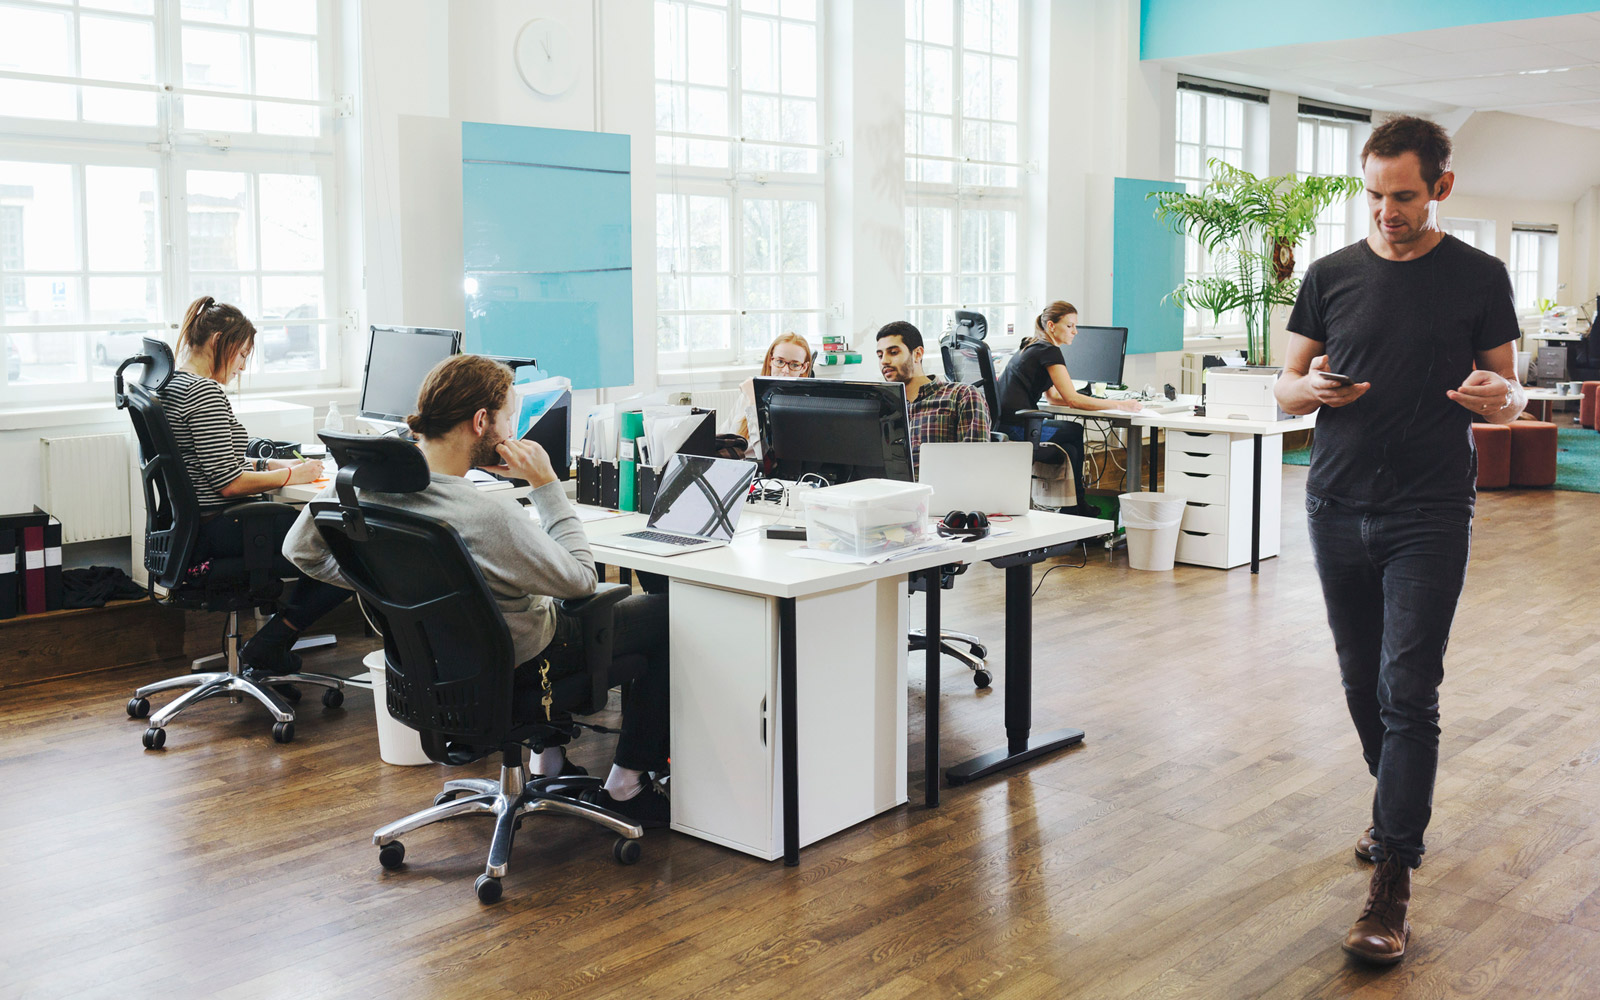 Businessman walking by colleagues working at desk in creative office